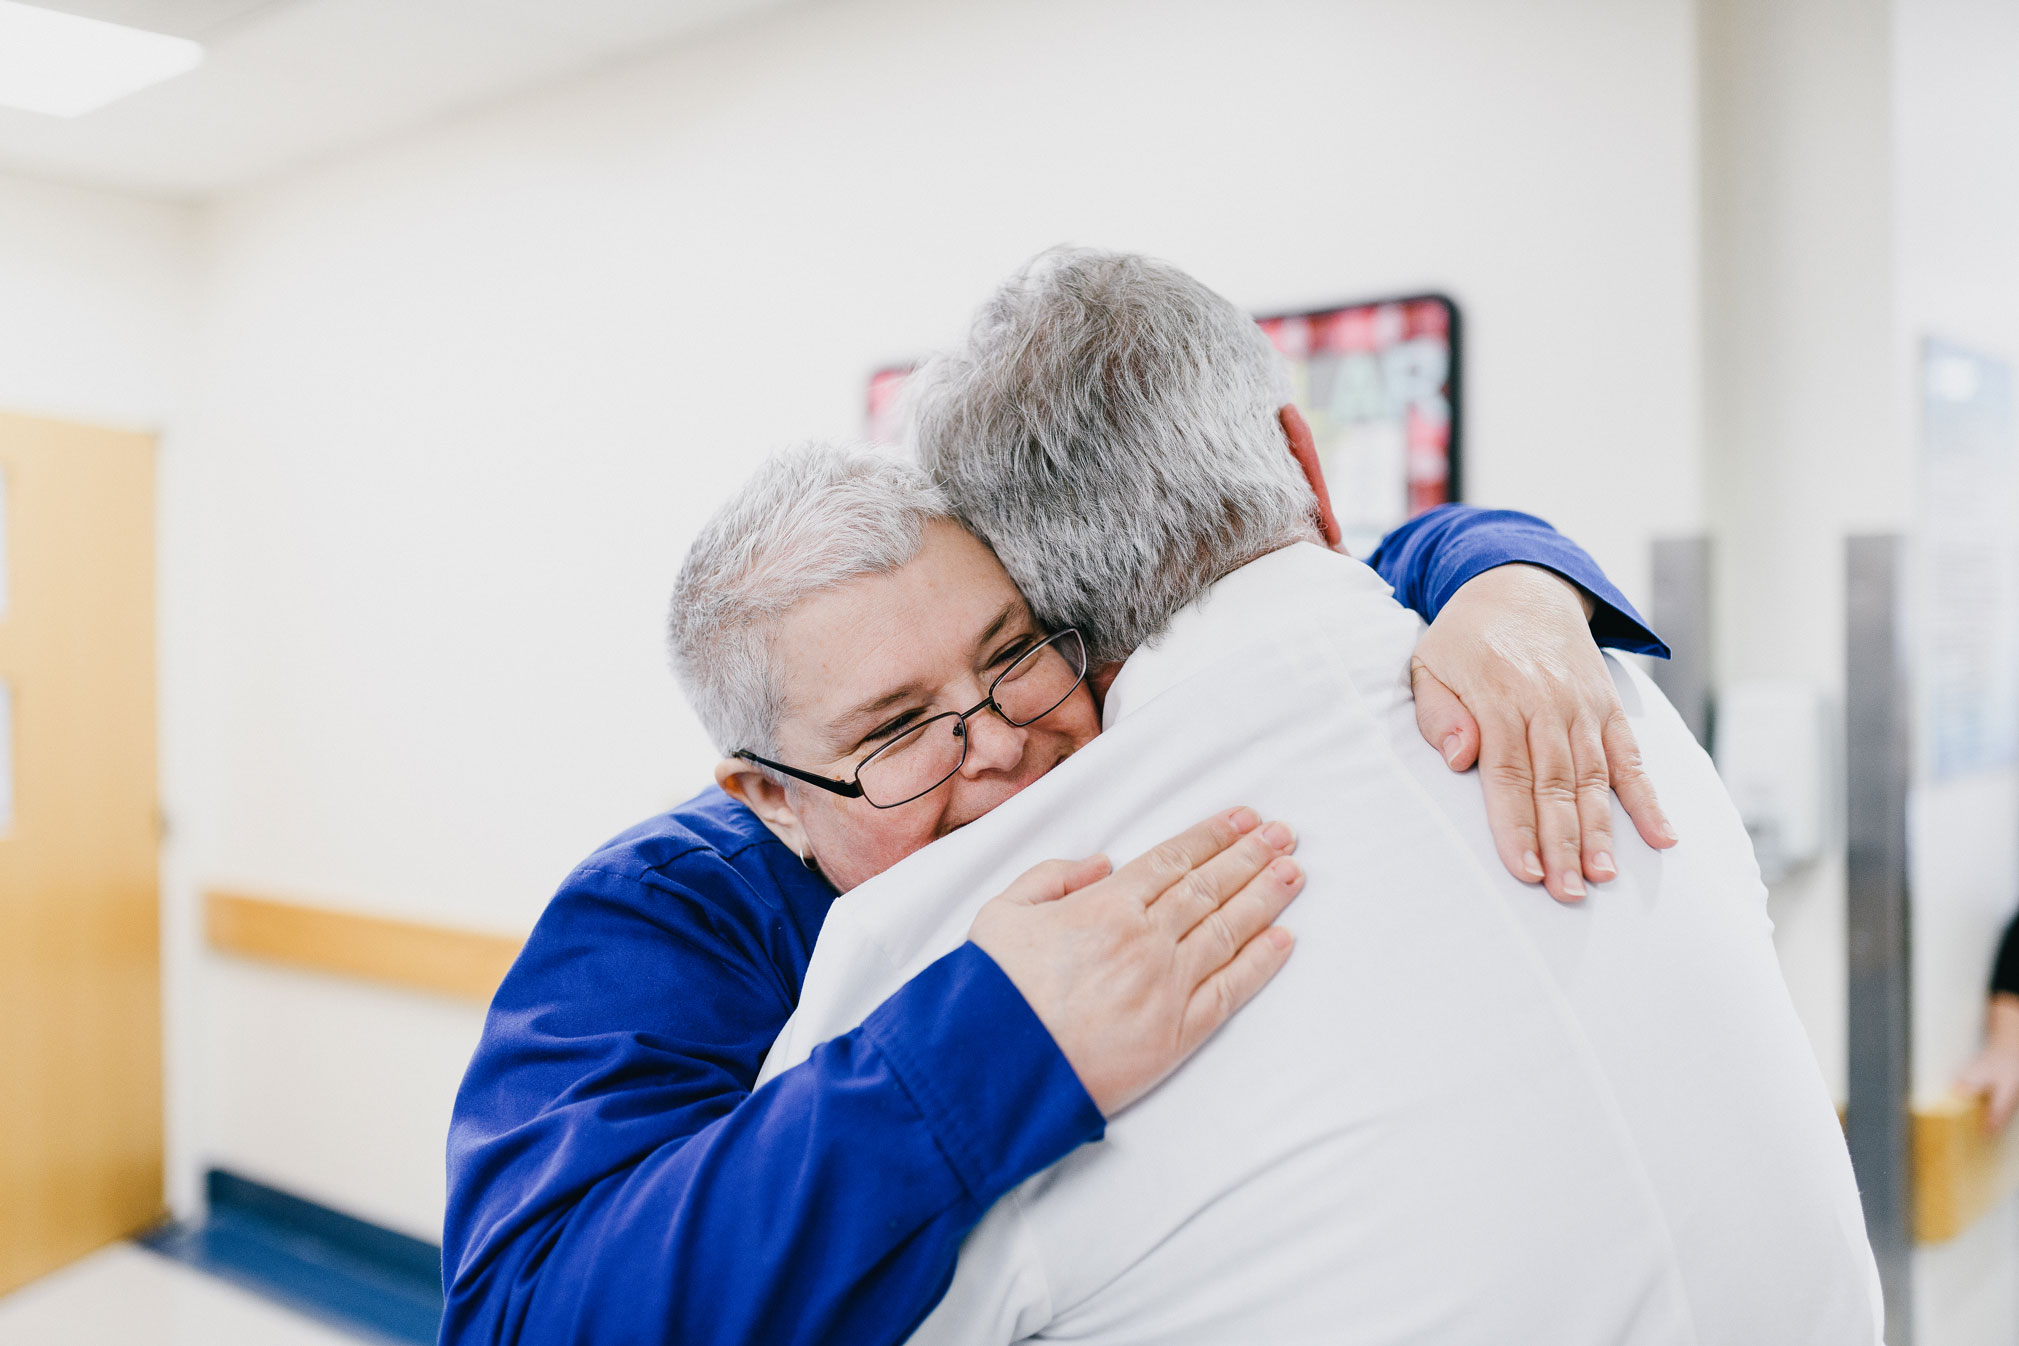 Kelly Kampmann, RN, gives Dr. McLarney a hug. She was responsible for Dr. McLarney's recovery care.